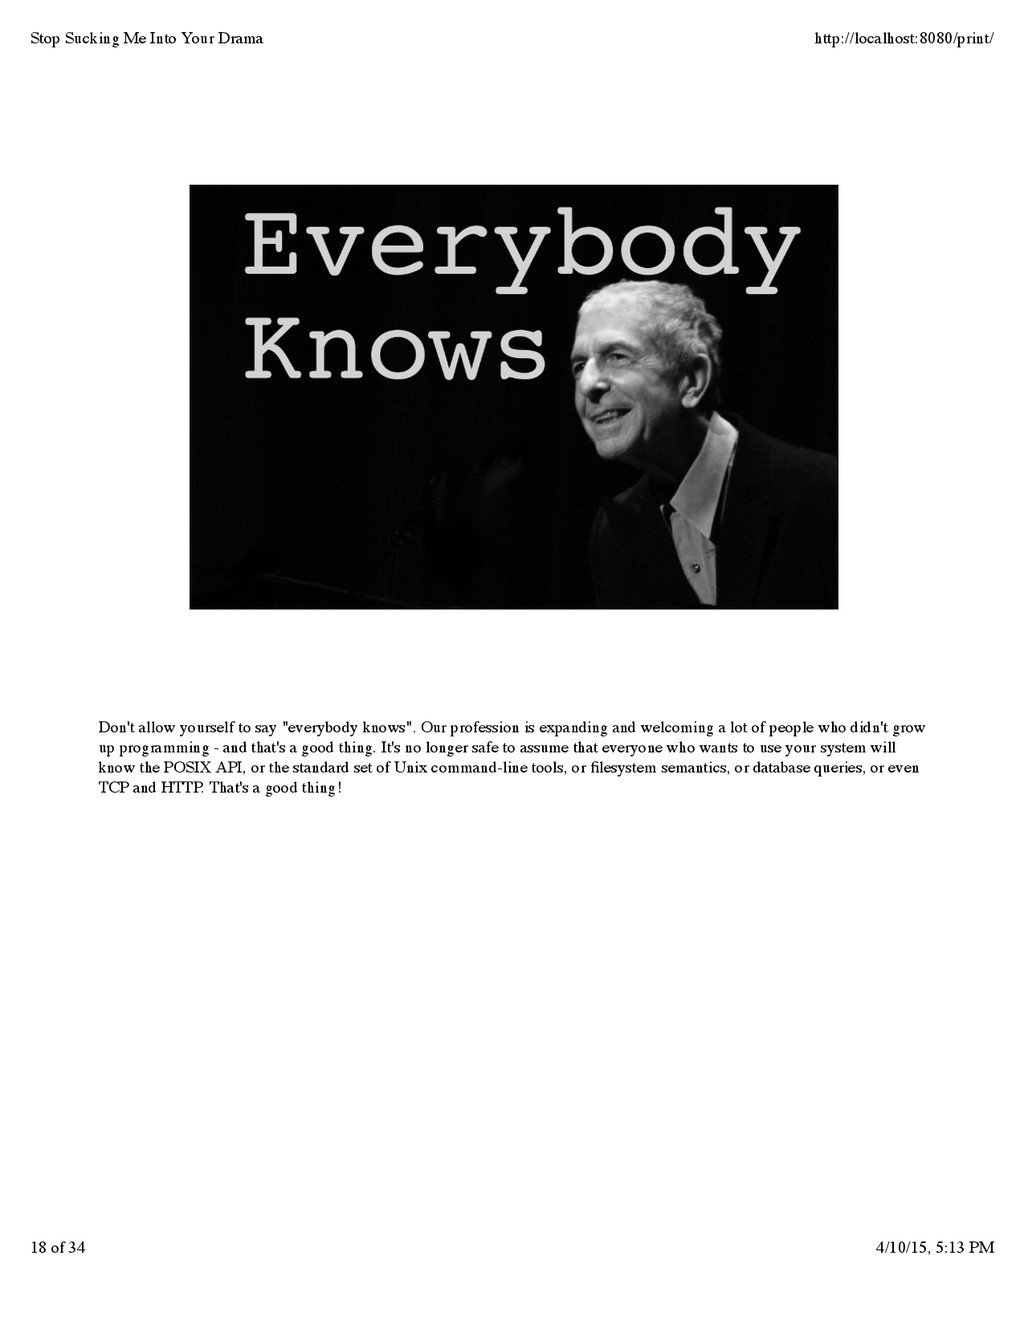 """Don't allow yourself to say """"everybody knows"""". ..."""